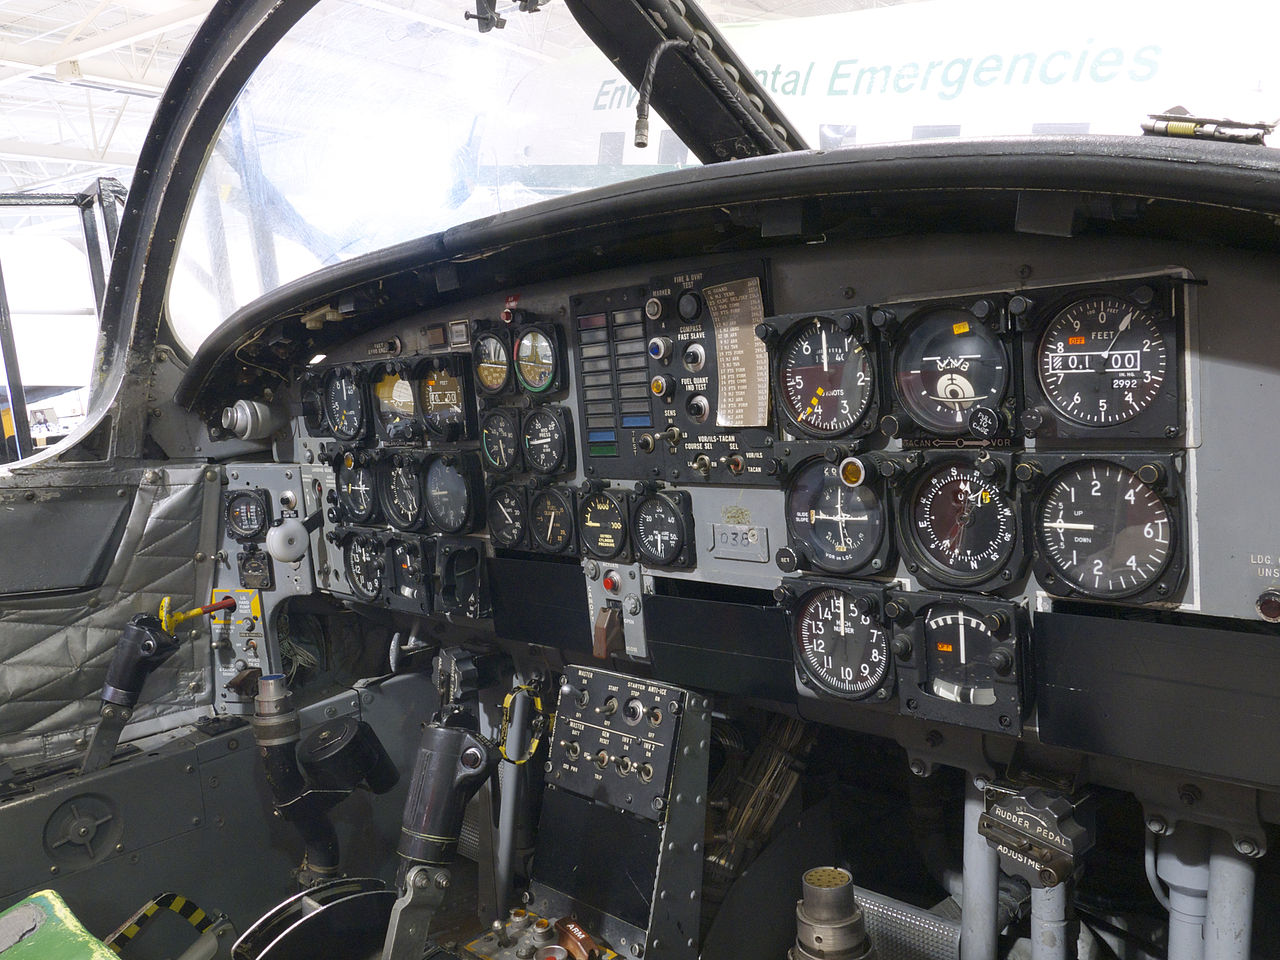 Canadair CL-41 Tutor (CT-114) - Cockpit